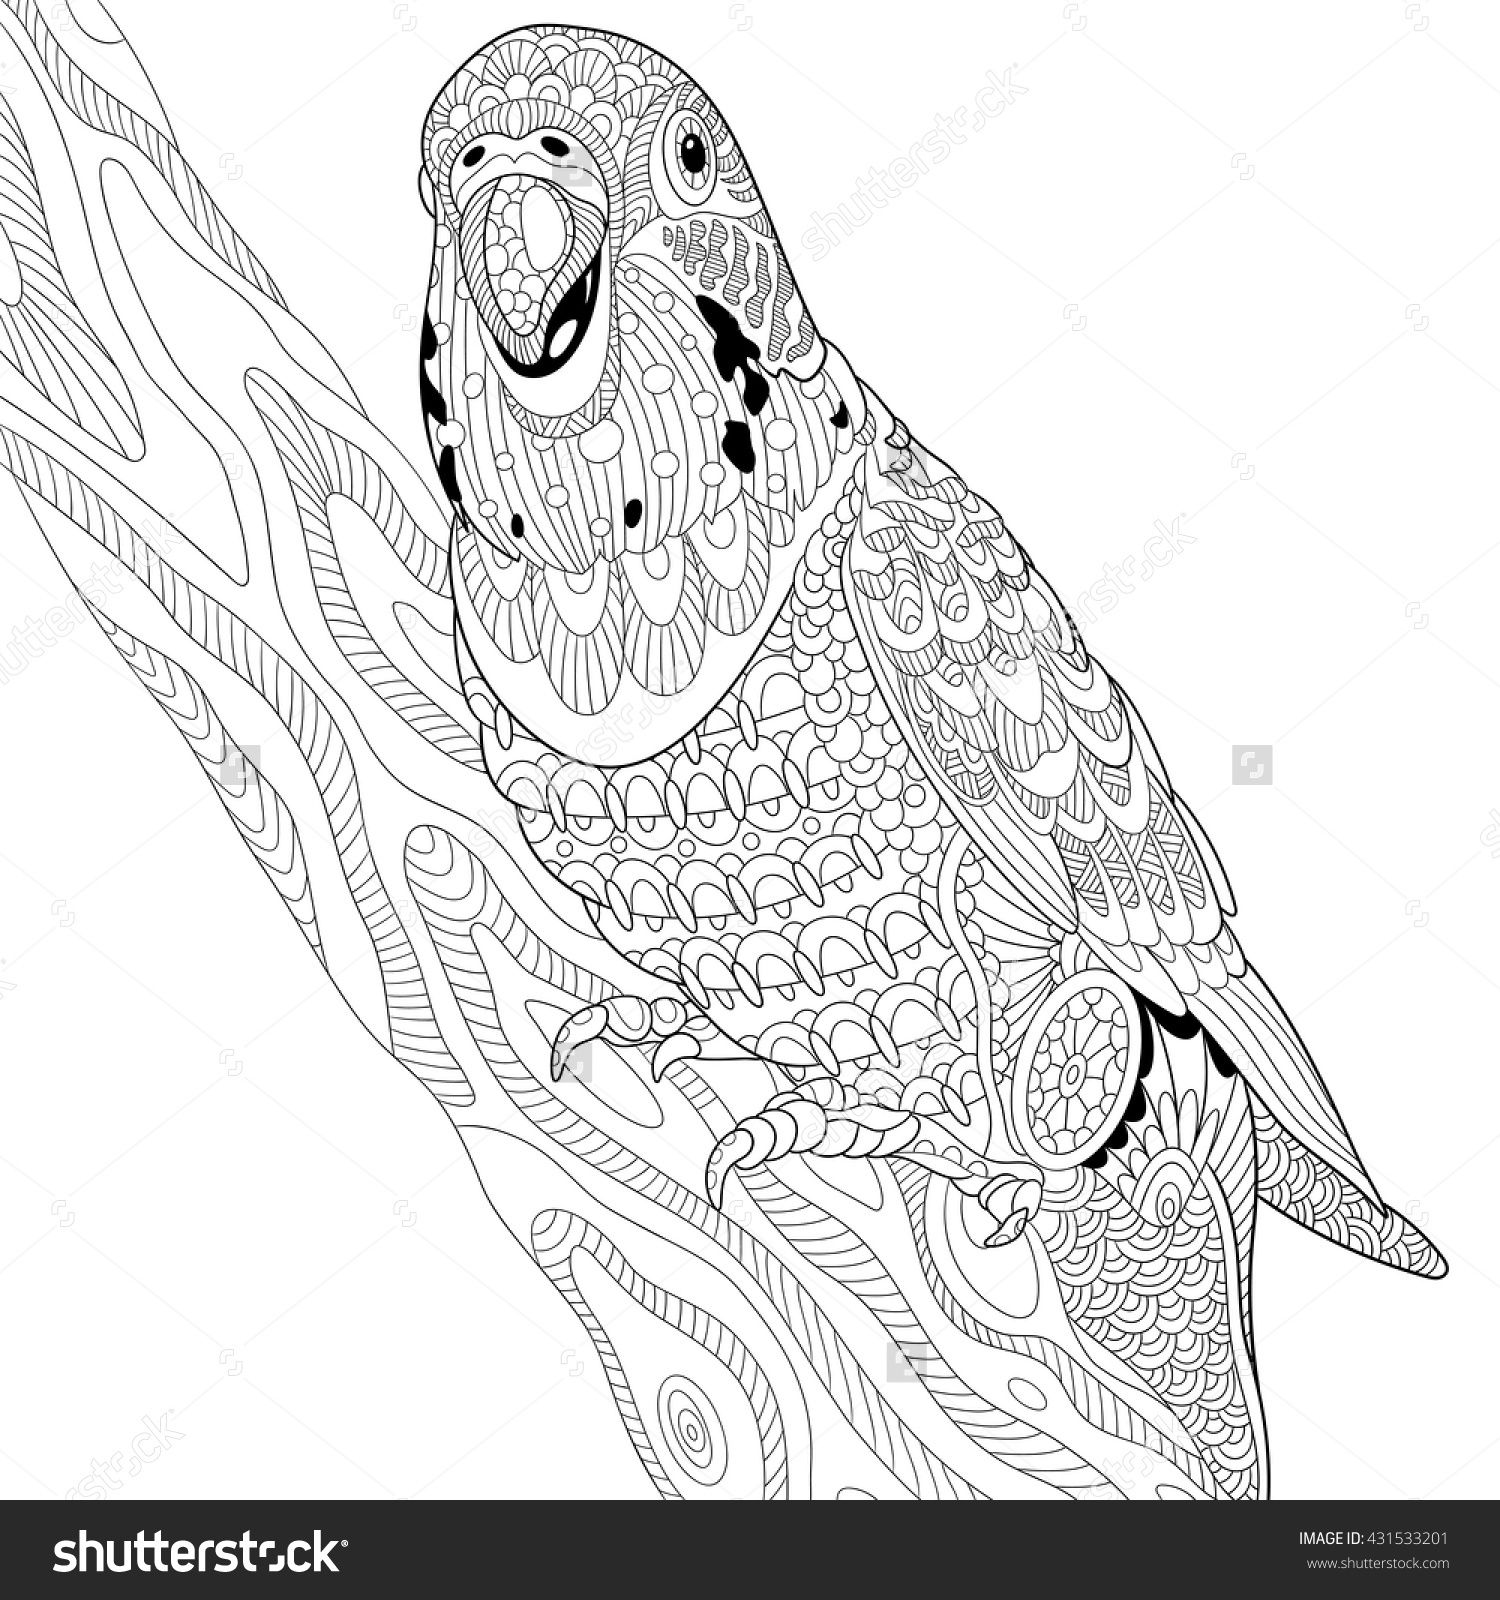 zentangle stylized cartoon budgie parrot sitting on tree branch